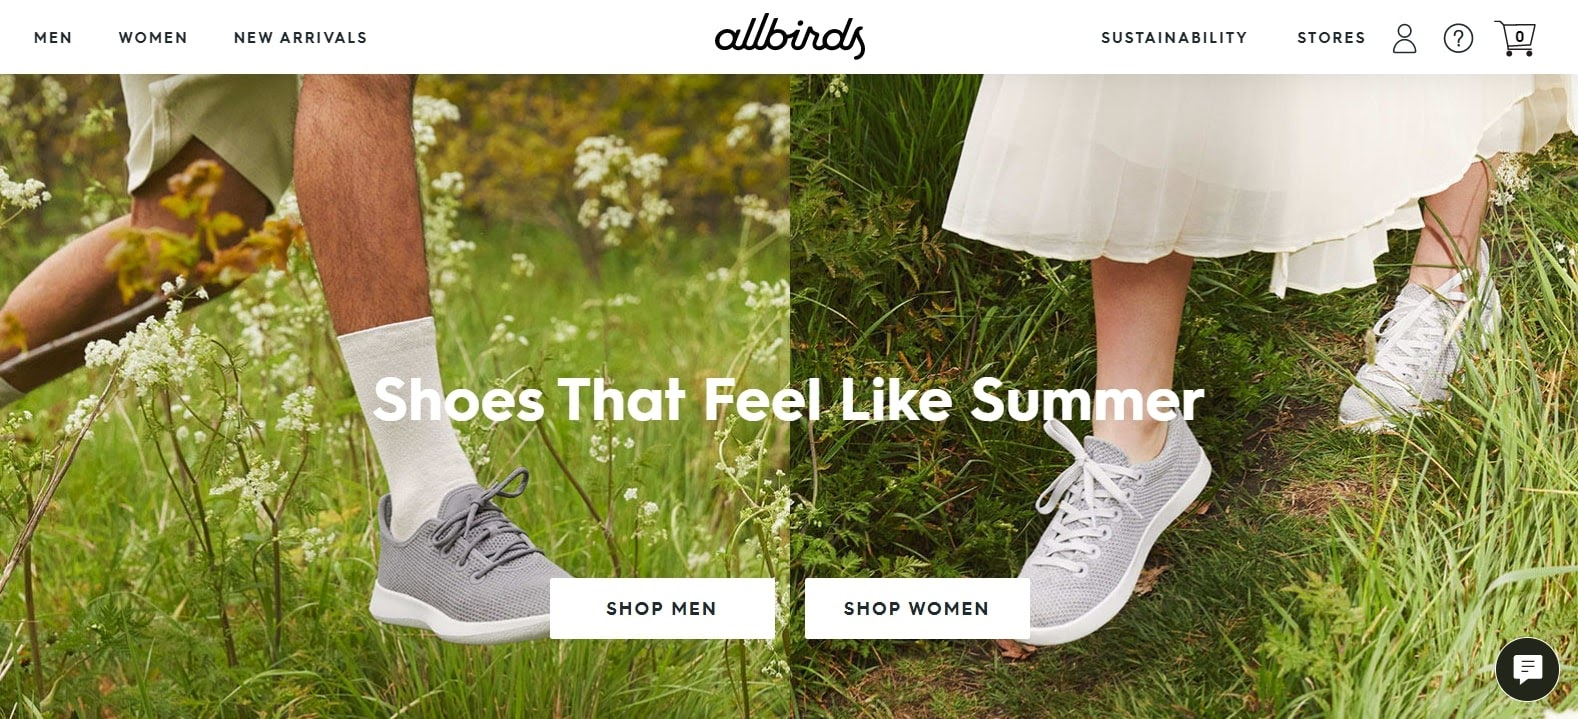 example of above the fold content from allbirds